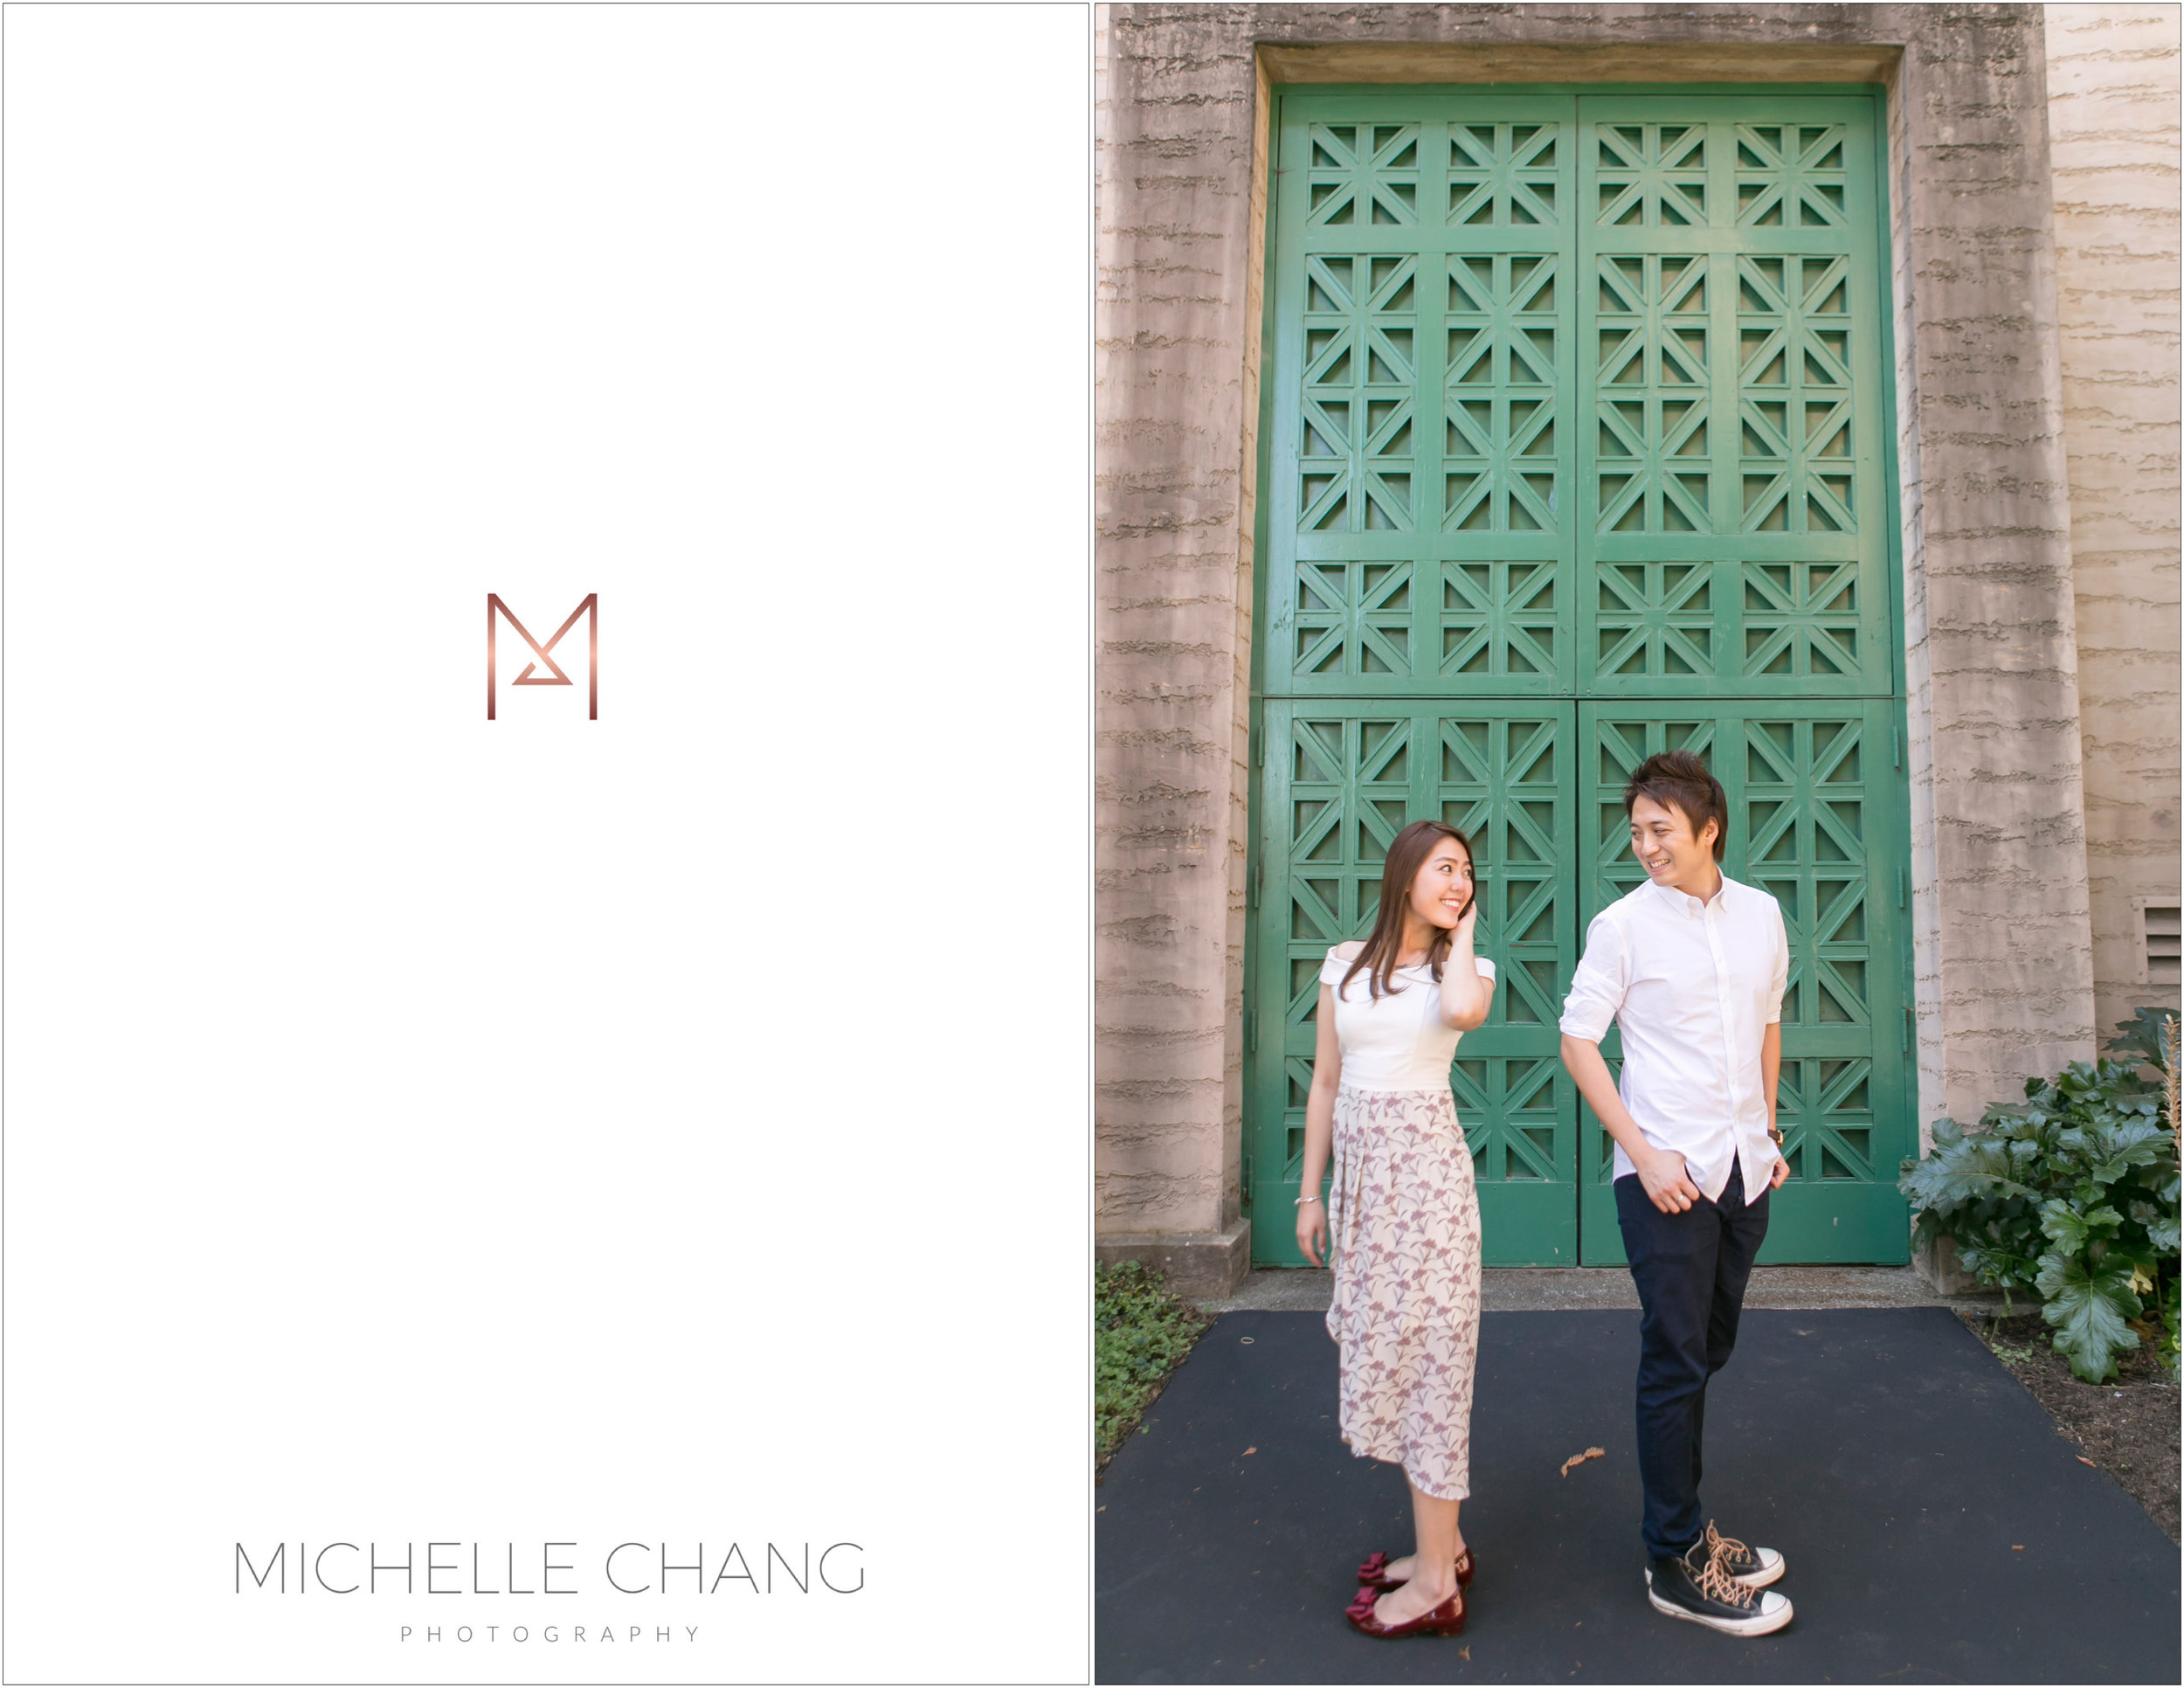 Palace of Fine Art - Michelle Chang Photography